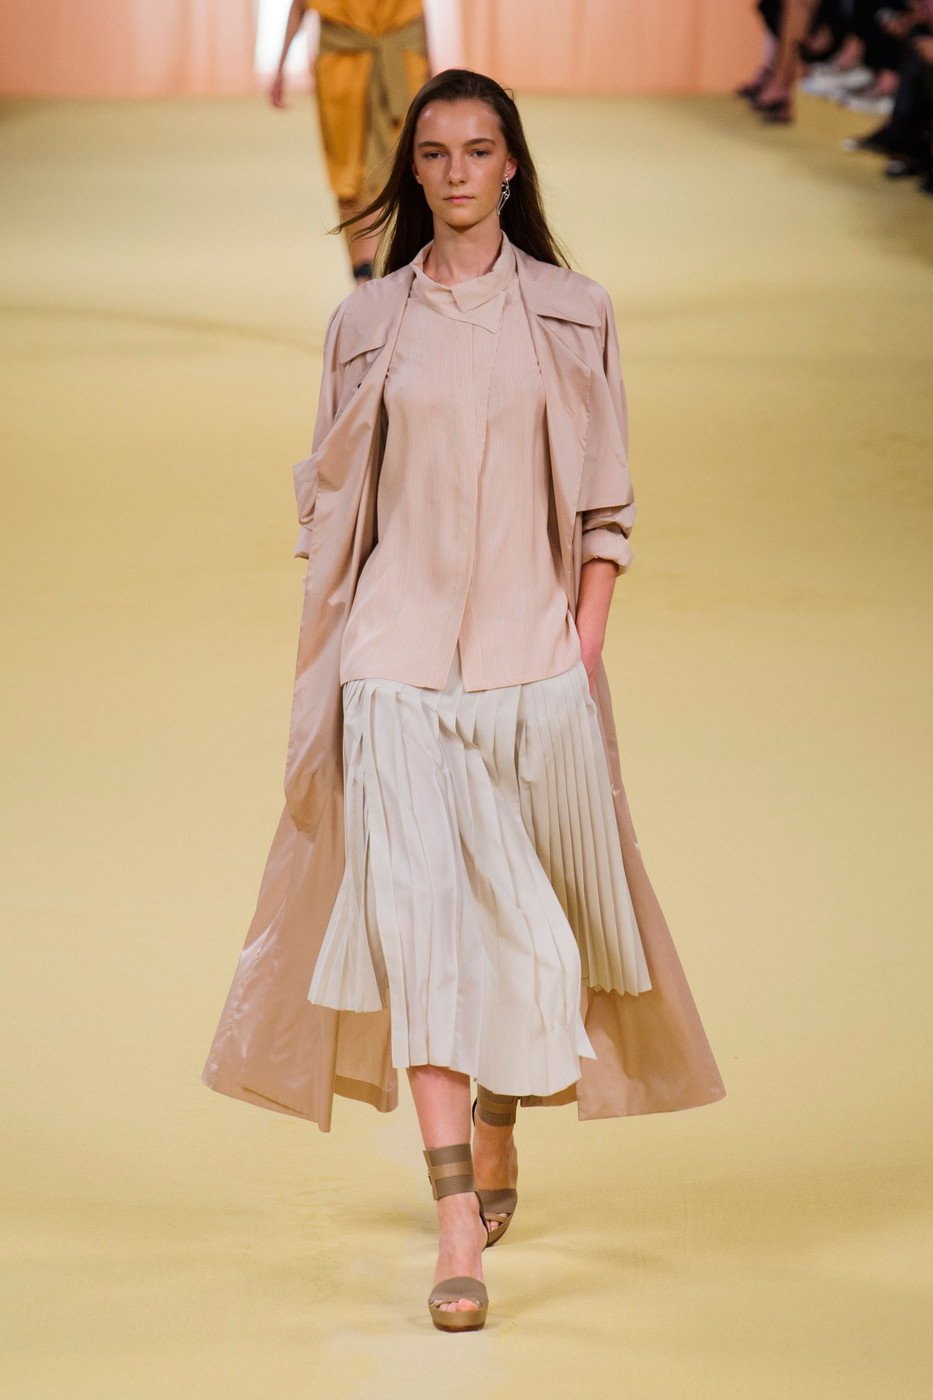 Christophe Lemaire Hermes Spring/Sumemr 2015 collection | Paris fashion week